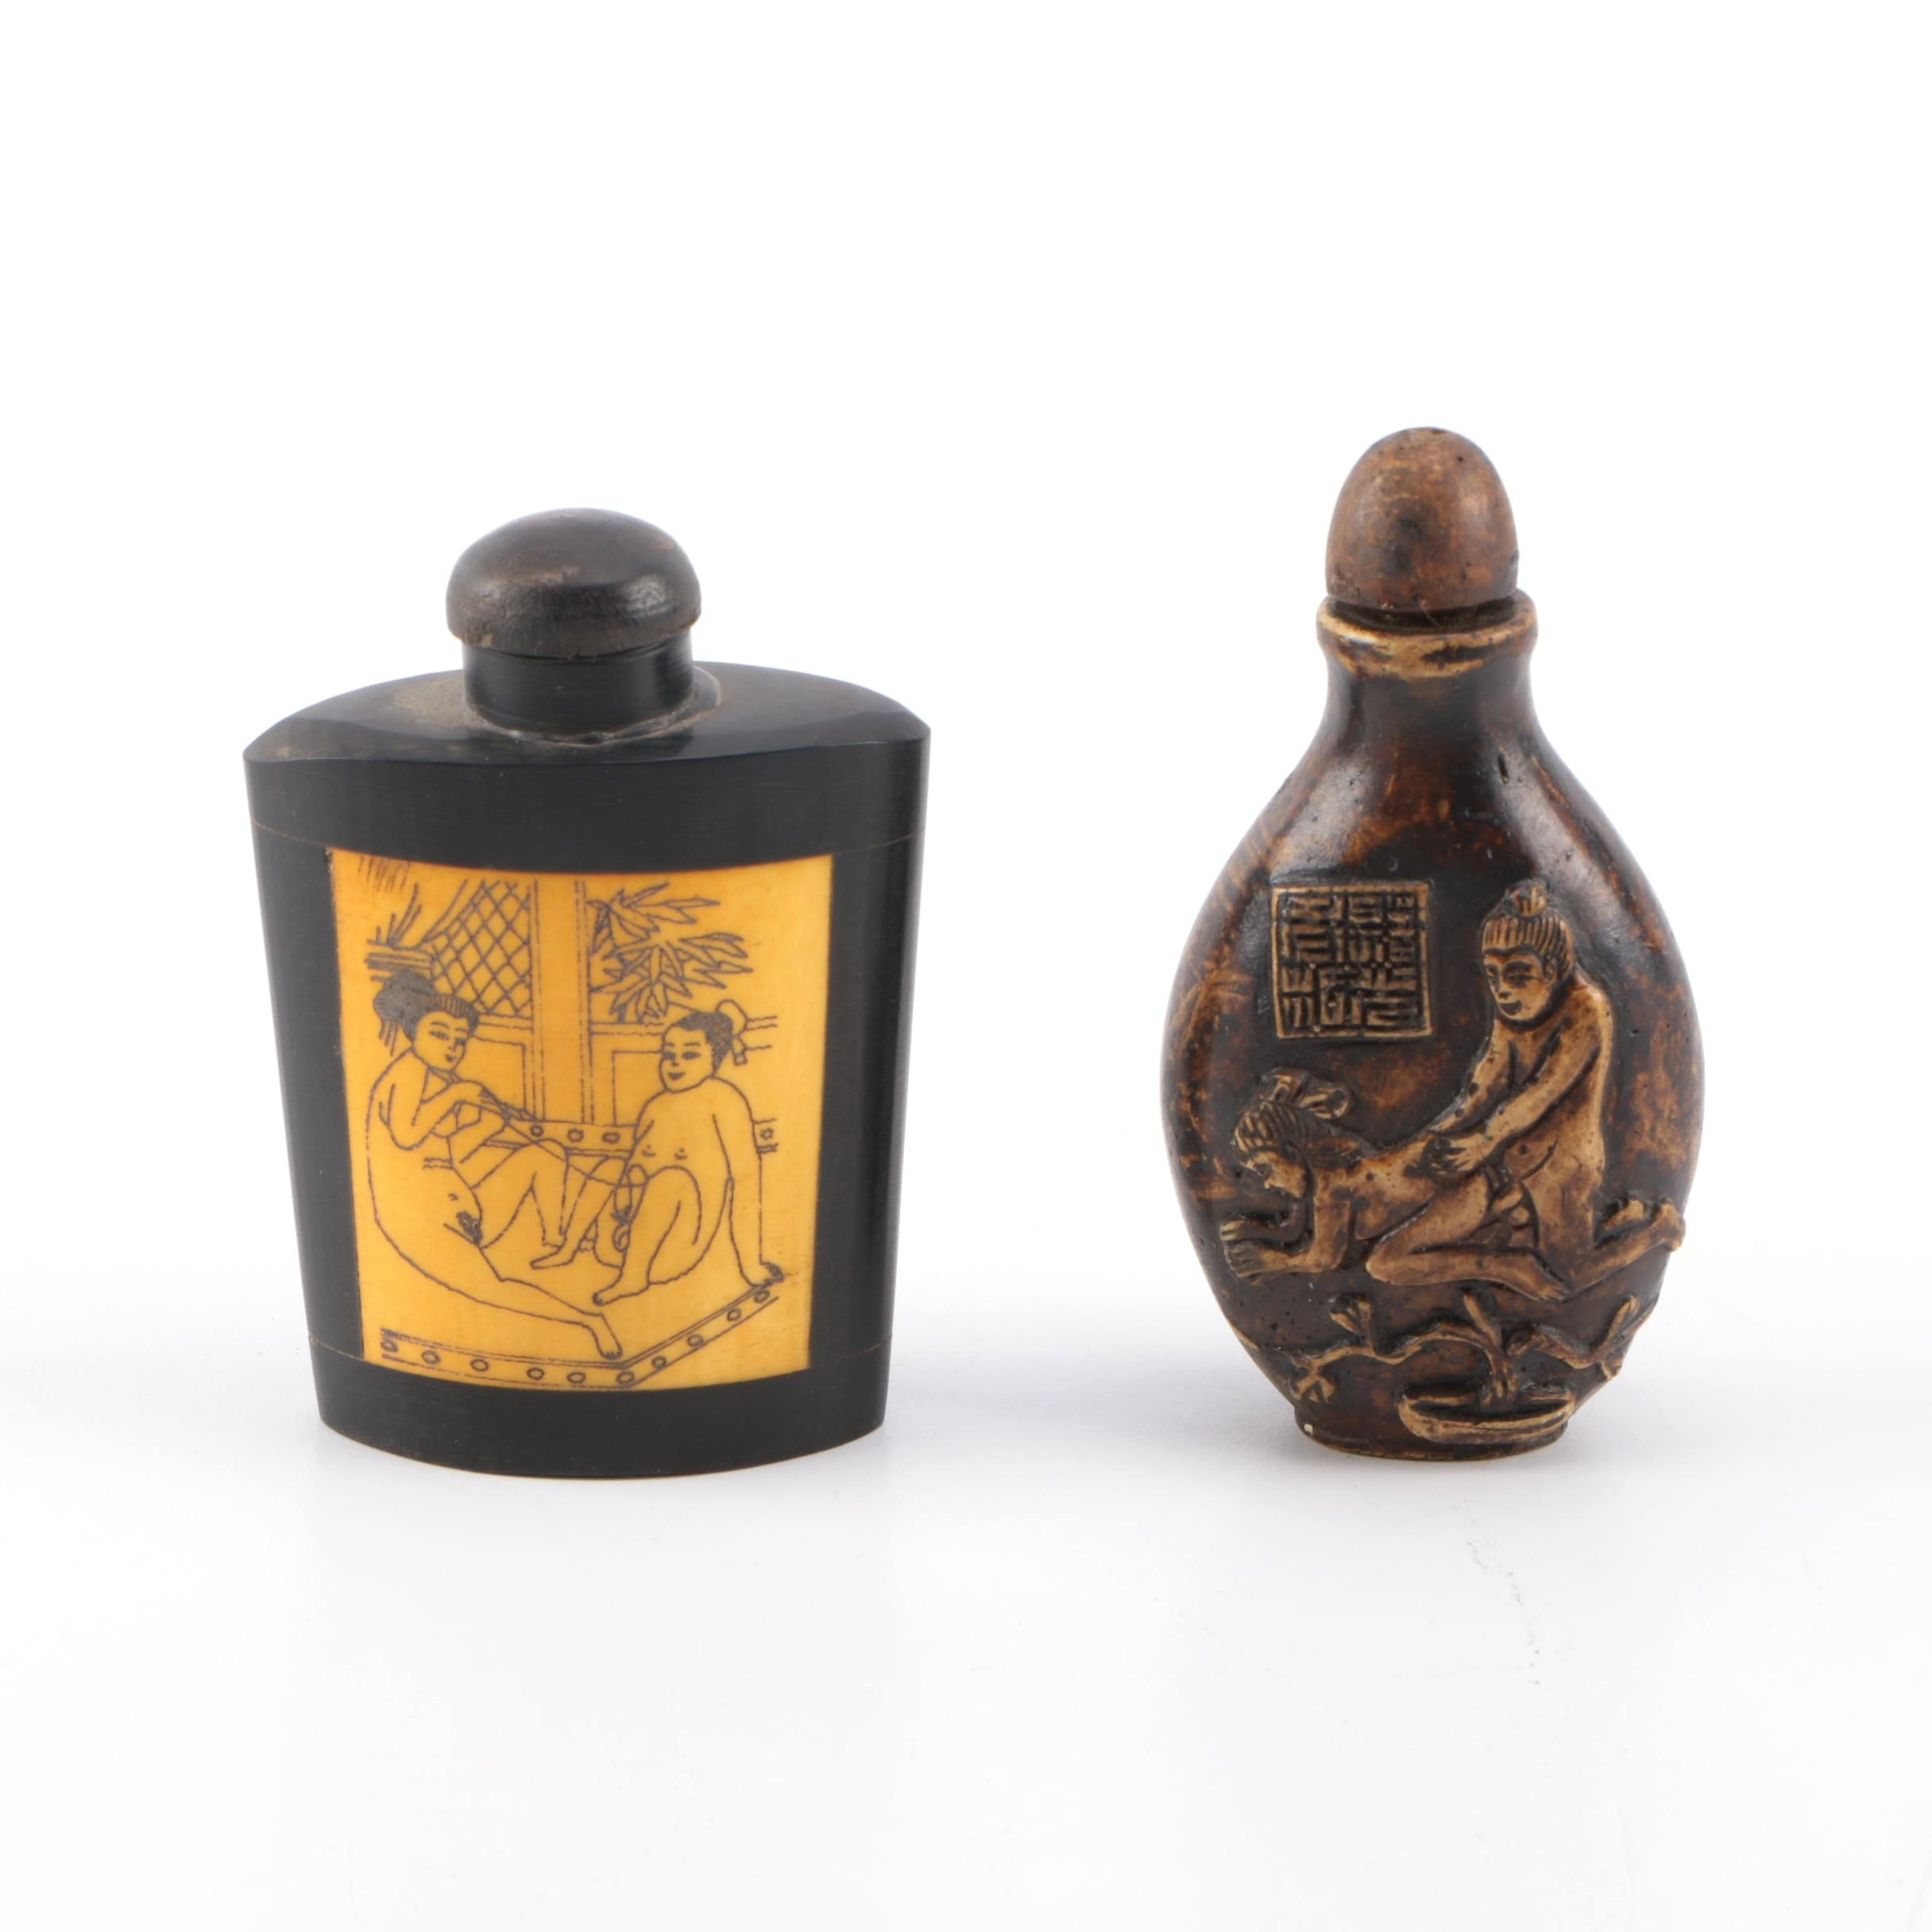 Erotic Chinese Stone and Metal Snuff Bottles